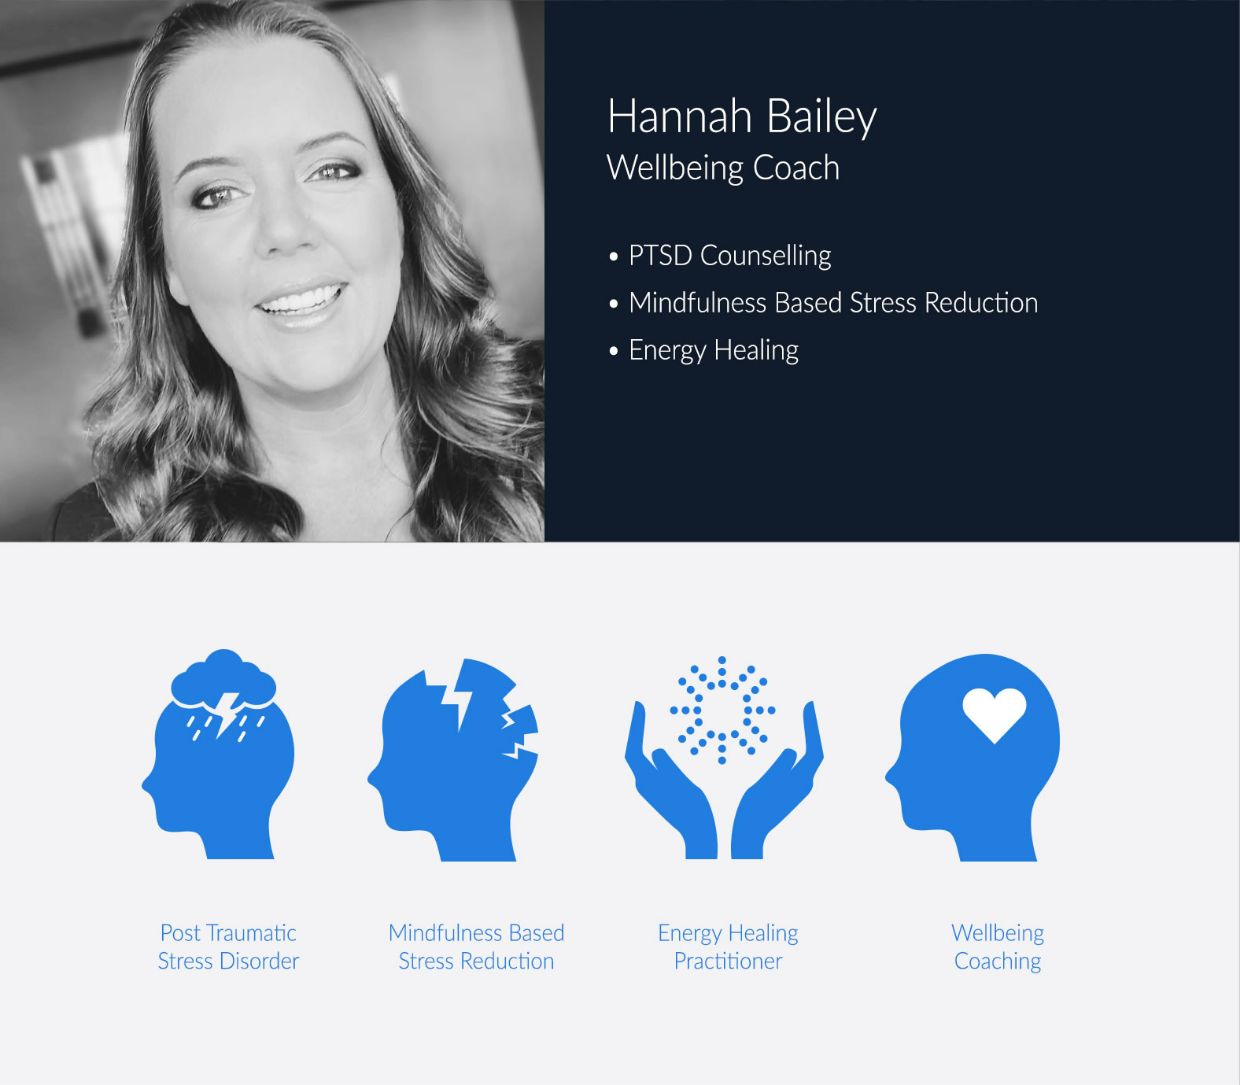 Hannah Bailey: Wellbeing Coach